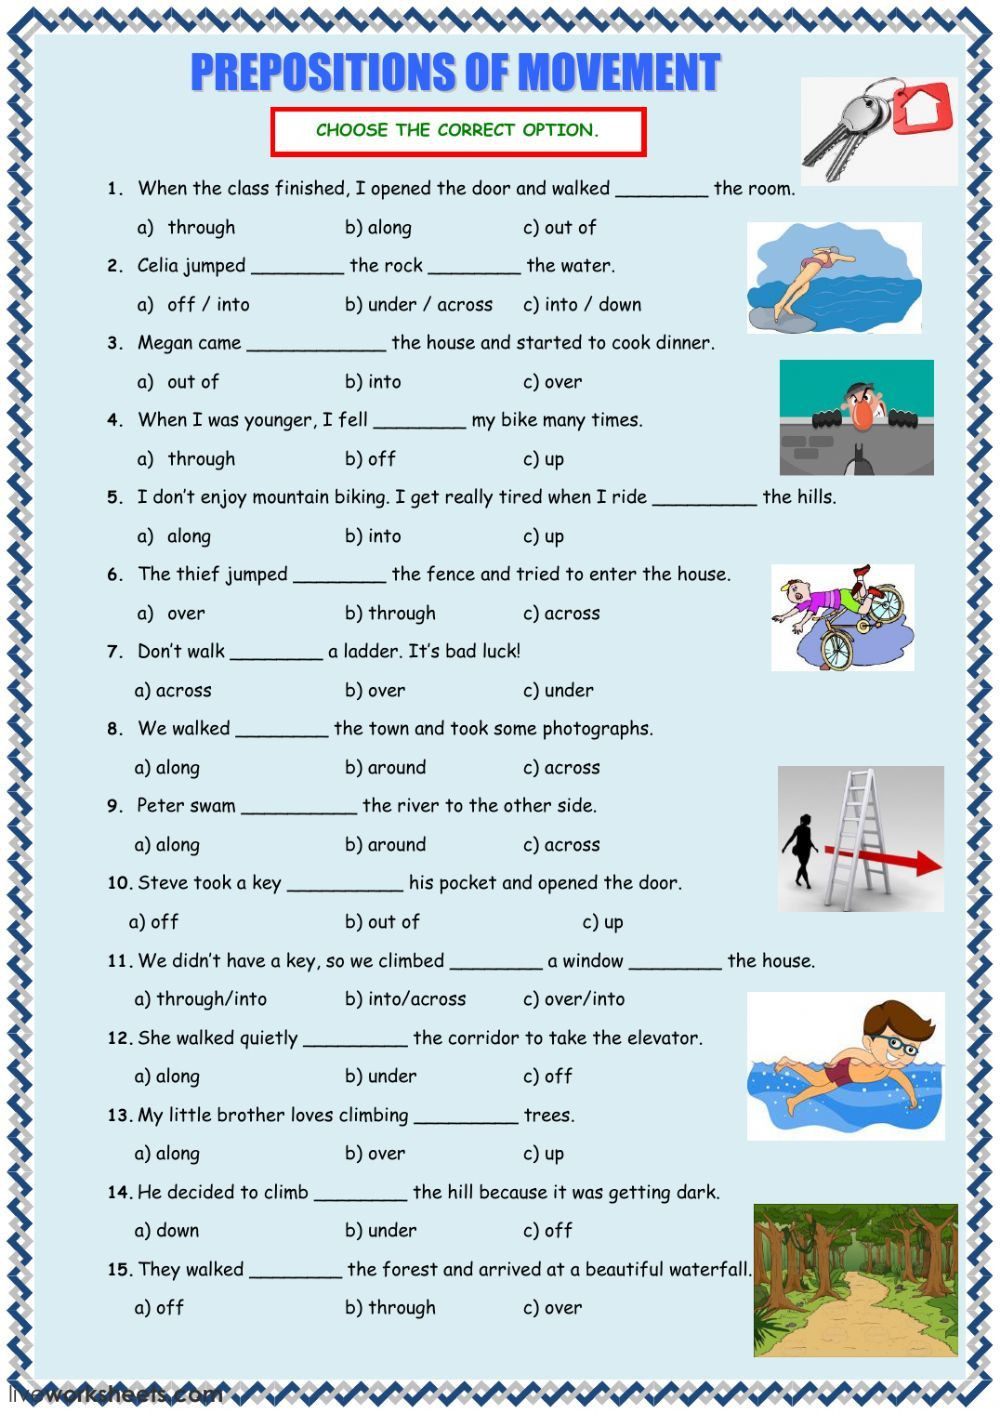 Preposition Worksheets Middle School Prepositions Of Movement Interactive and Able